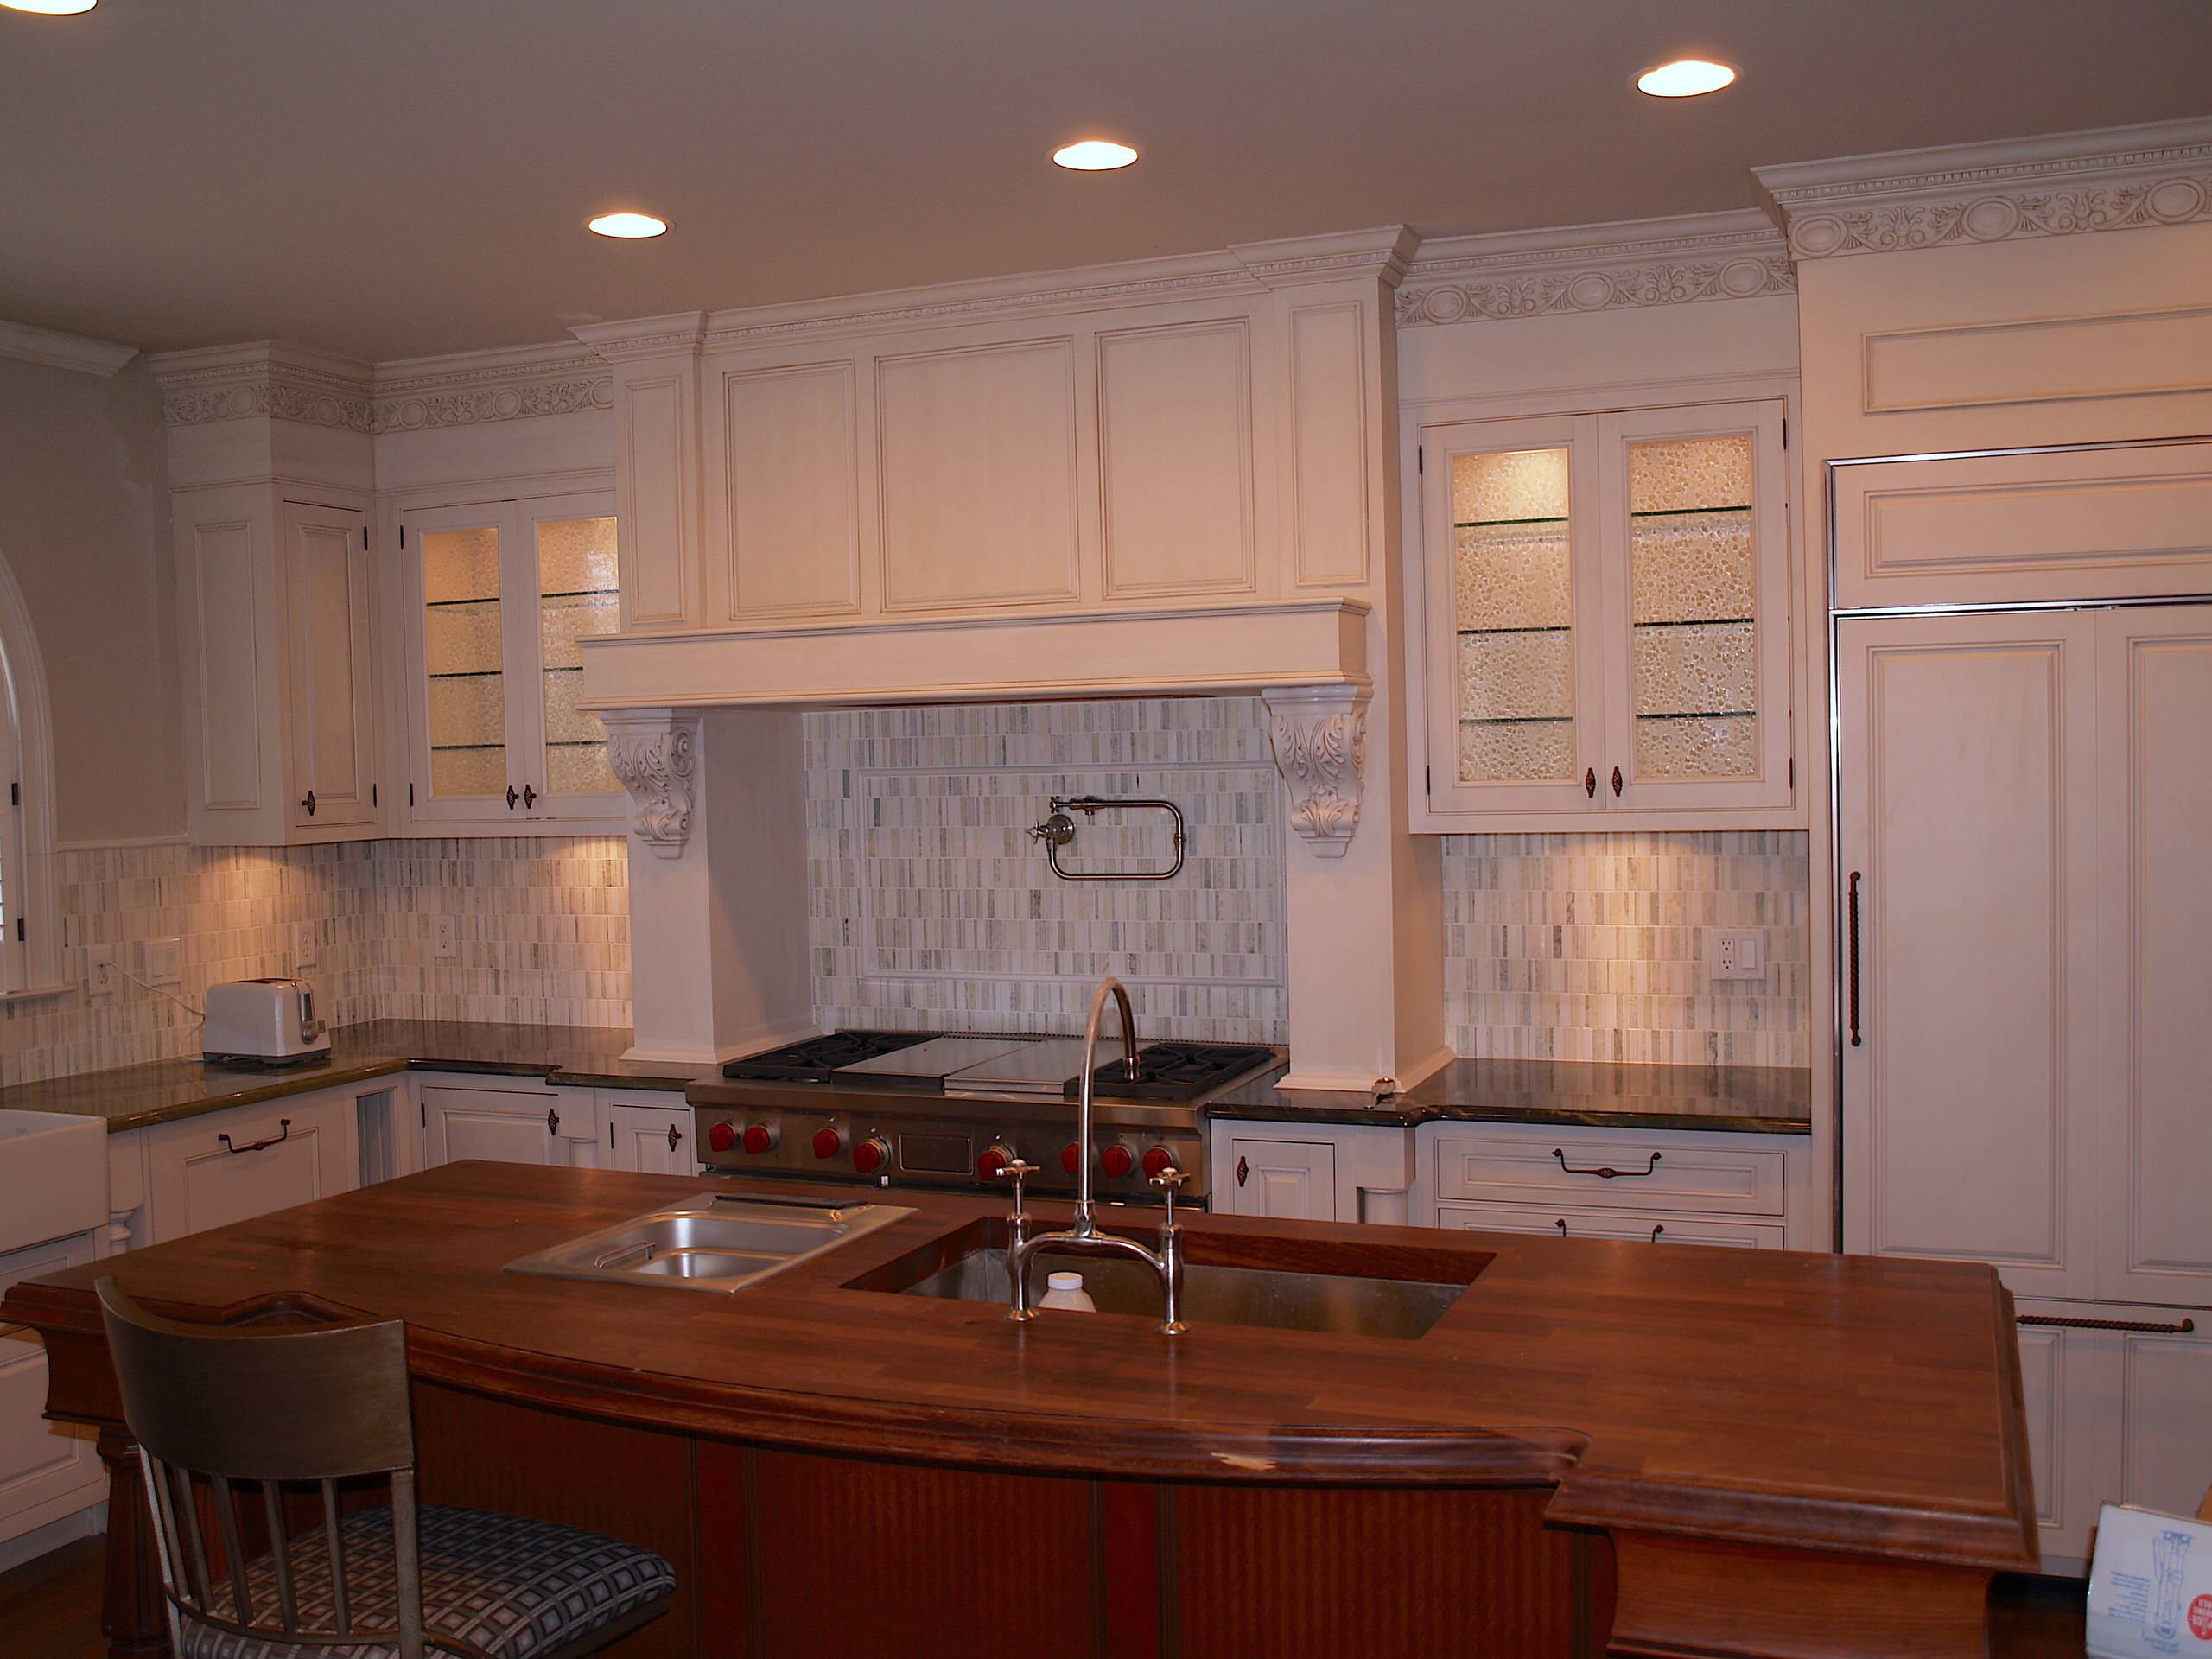 Cabinet Refinishing,Off white with lit gray glaze